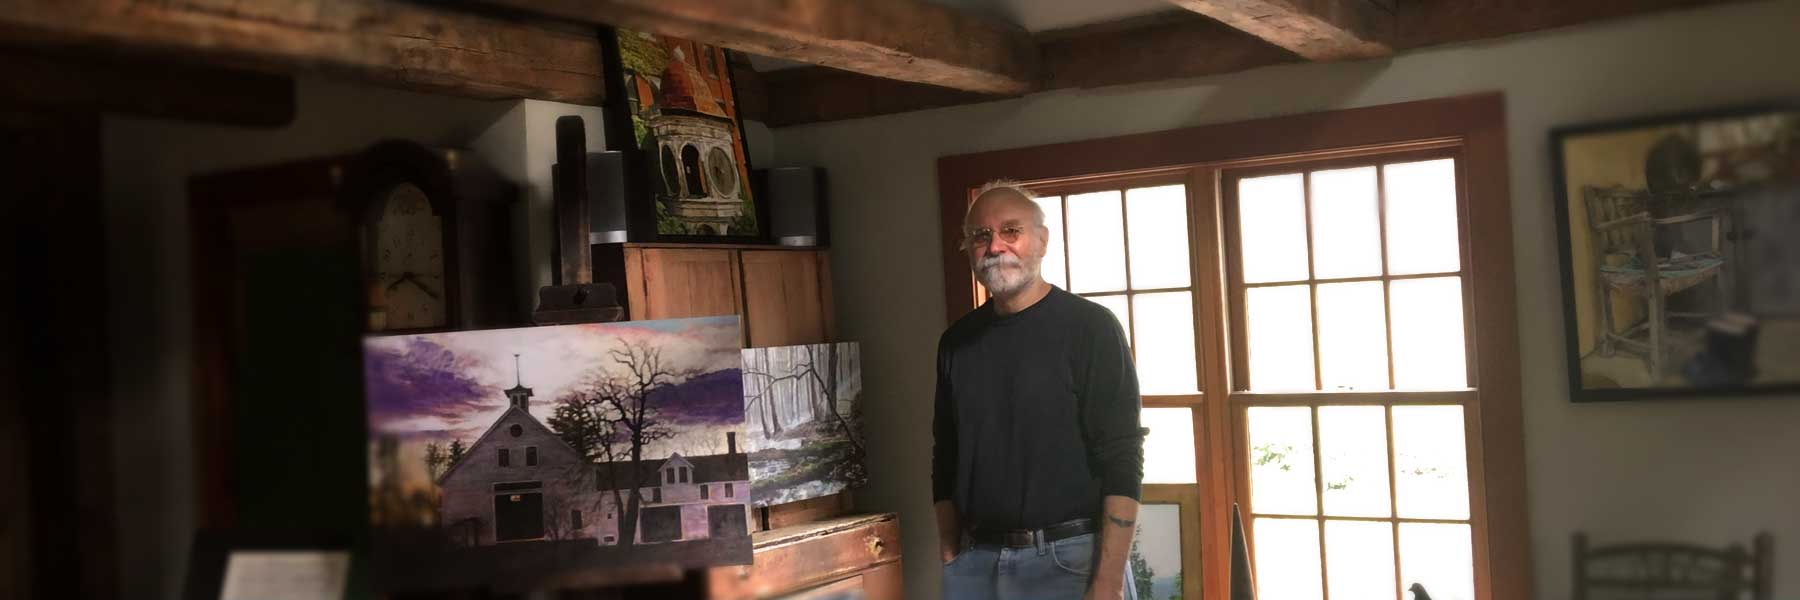 Oil painter-Tom Pirozzoli-at Davallia Gallery